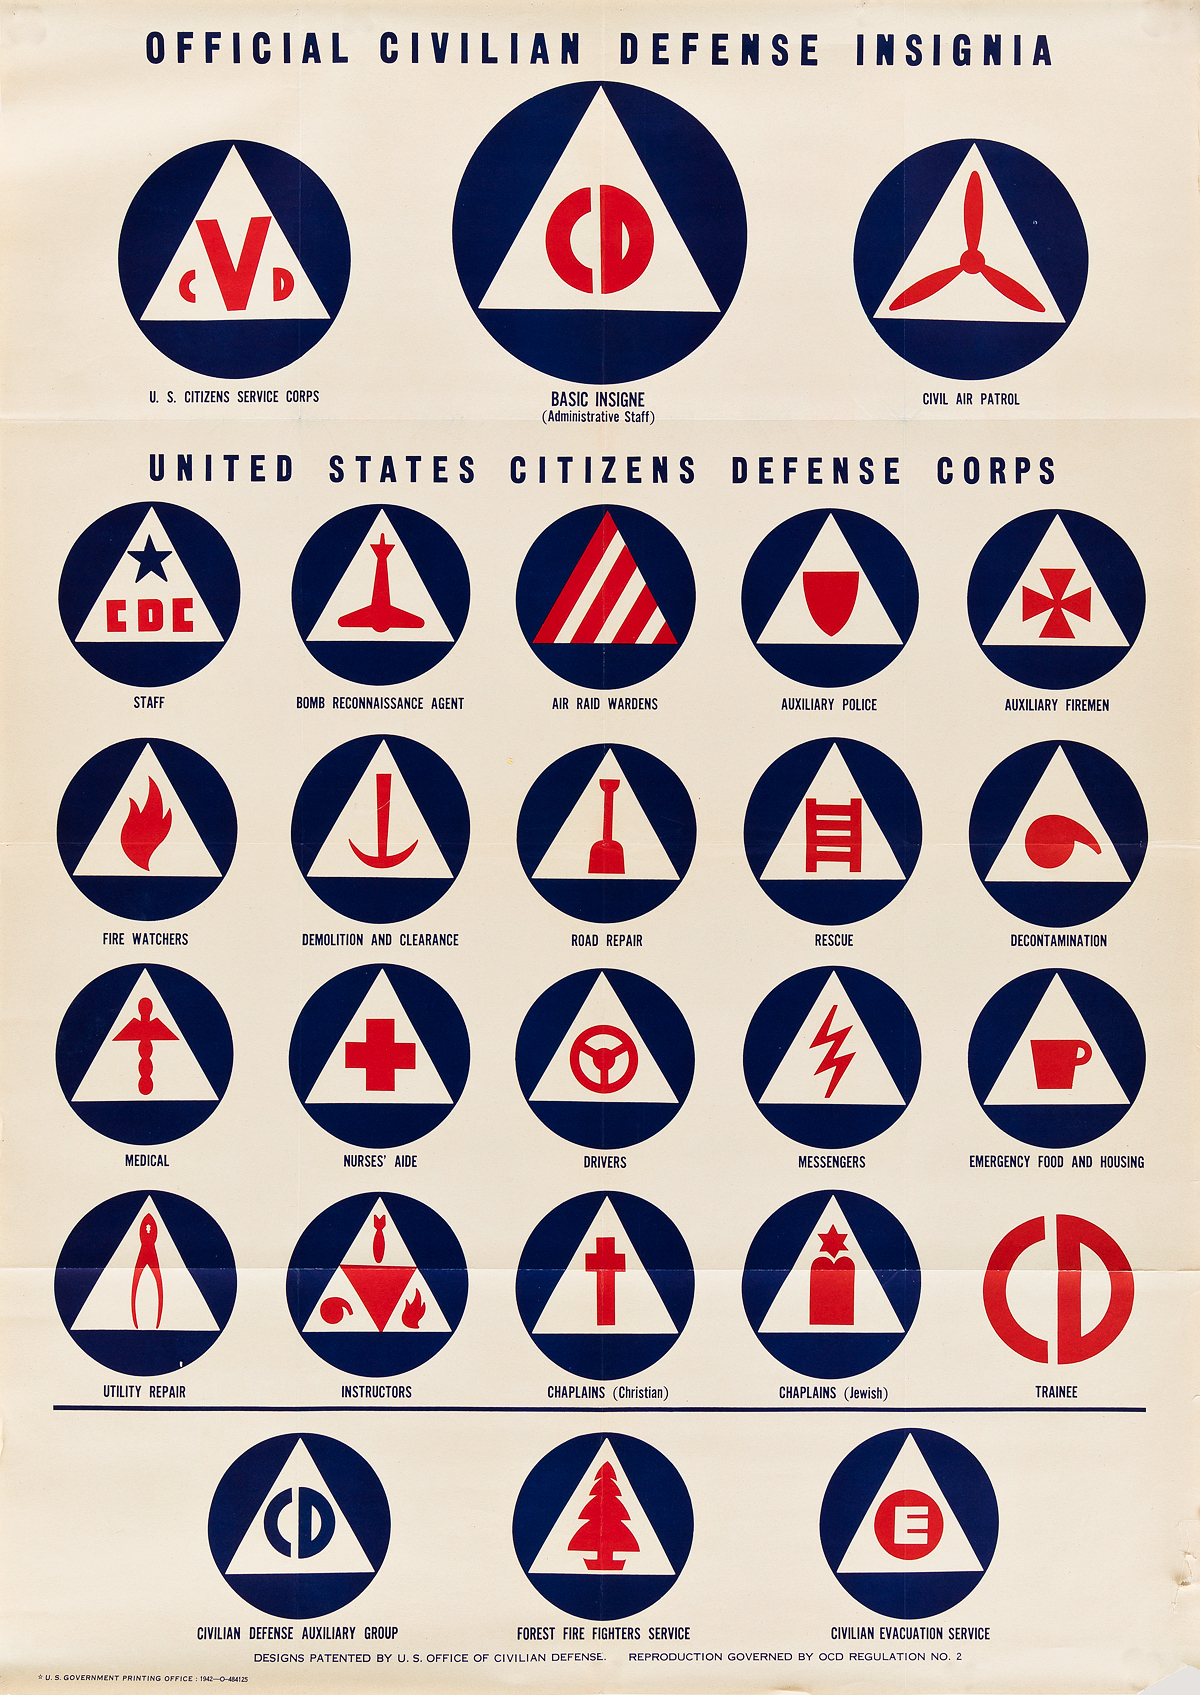 CHARLES-COINER-(1898-1989)-OFFICIAL-CIVILIAN-DEFENSE-INSIGNIA-1942-40x28-inches-101x72-cm-US-Government-Printing-Office-Washing